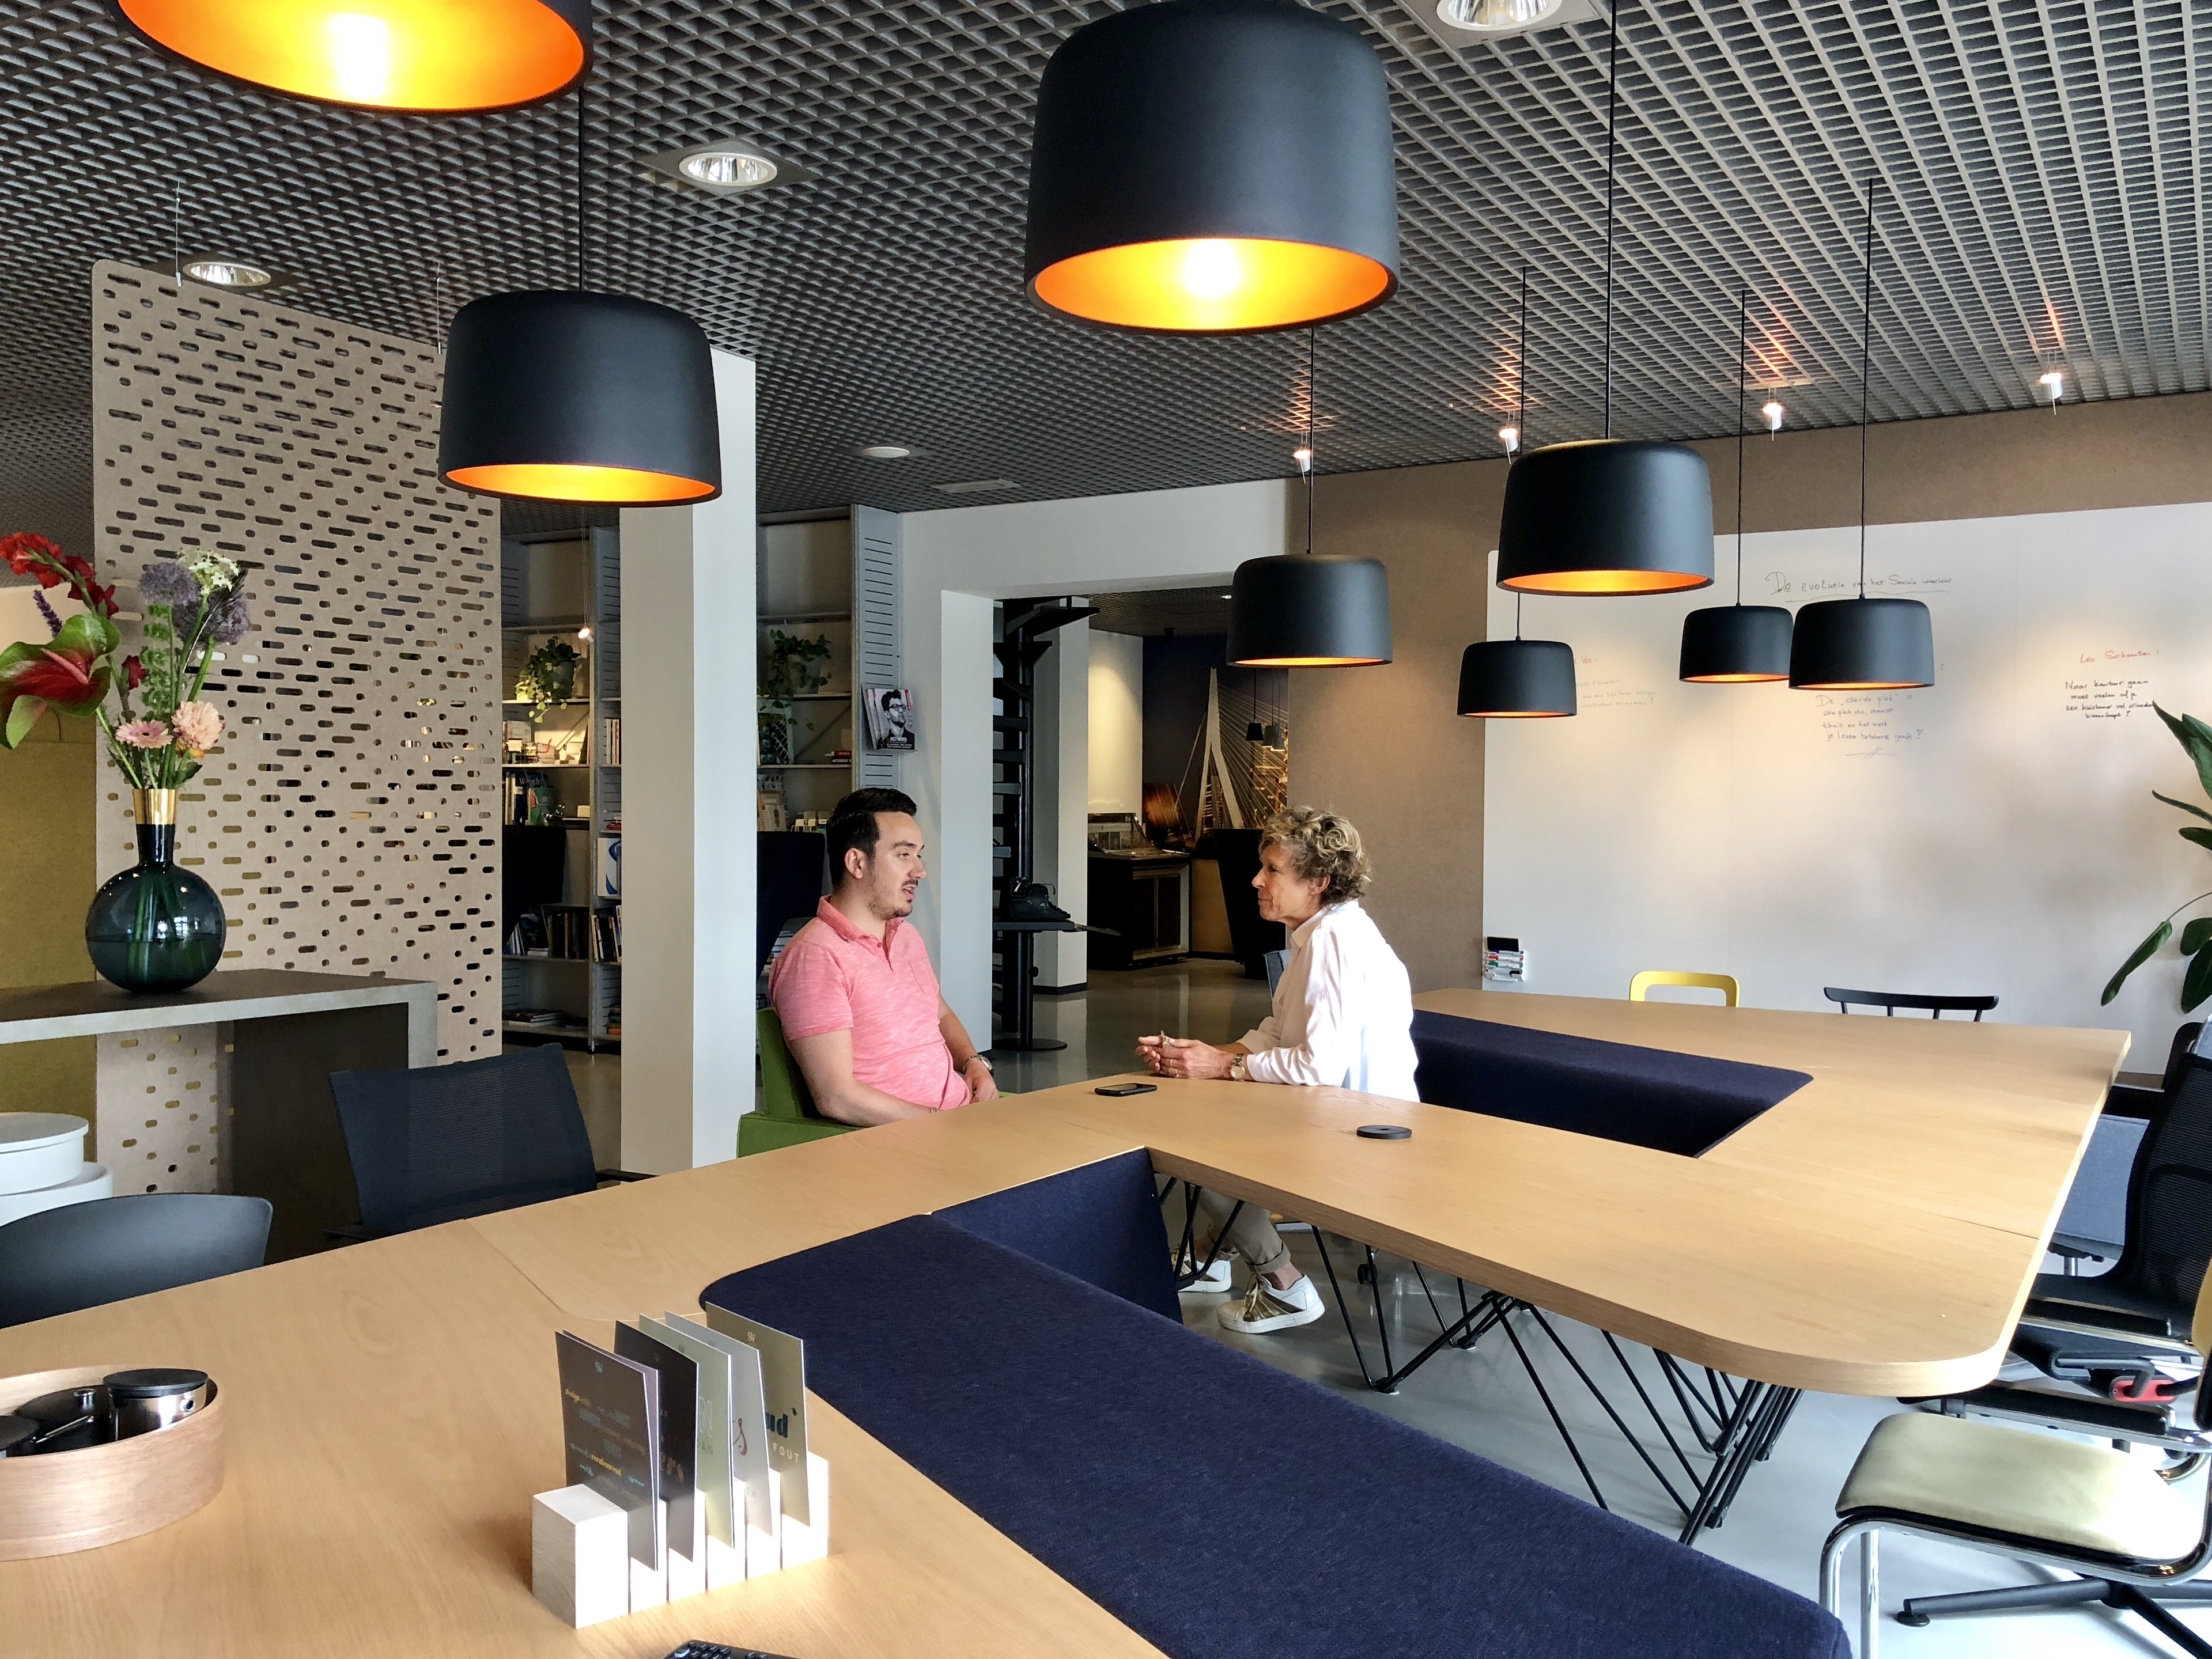 Nuon office heyligers design Headquarters Creating Space For Focused And Collaborative Work Related News Bostudio Architecture Pc Prooff Workspace Furniture Design Shaping The Future Of Work